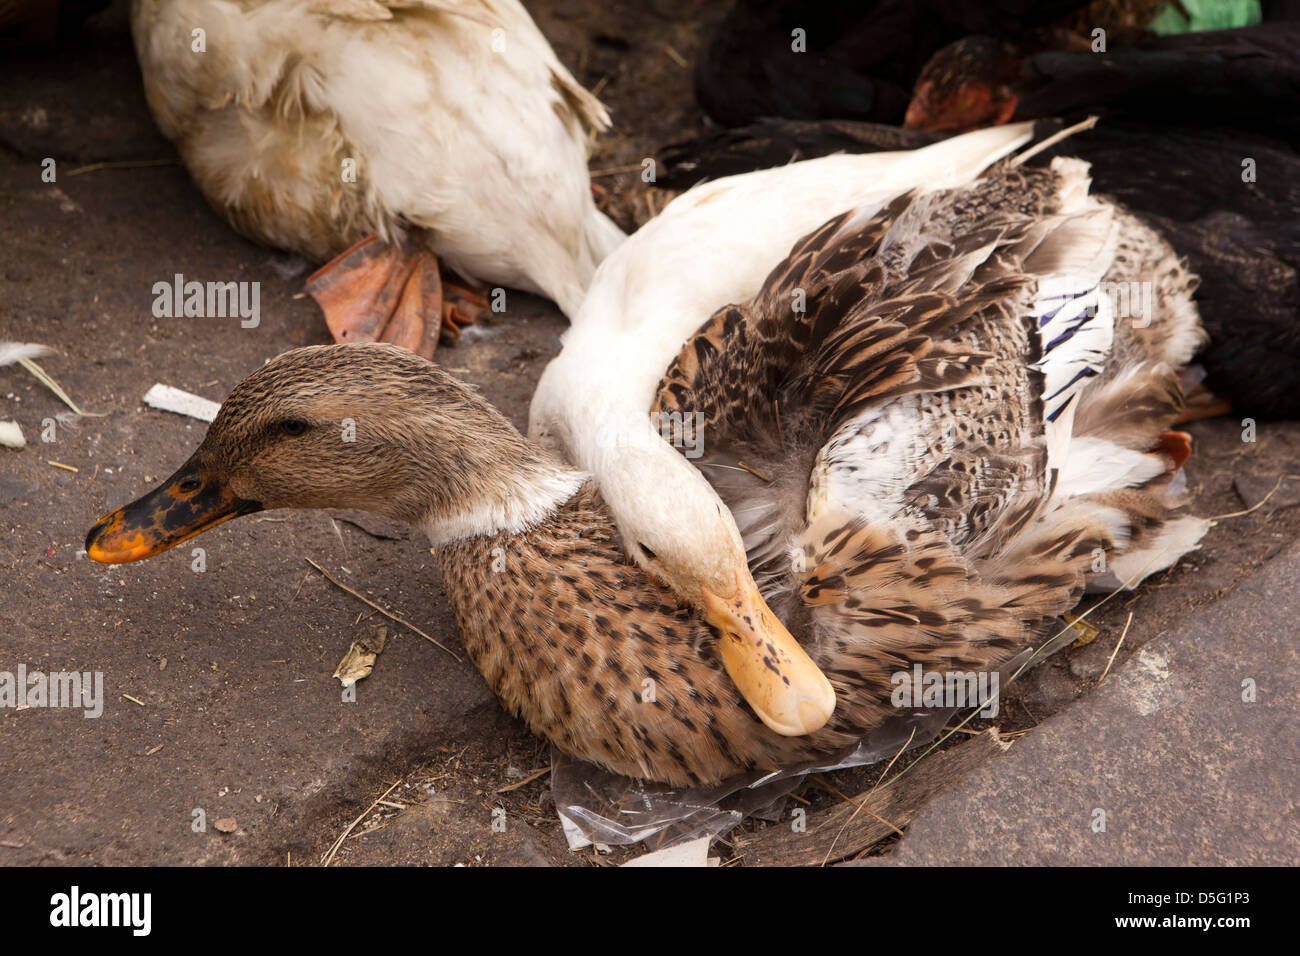 Selling Ducks Stock Photos & Selling Ducks Stock Images - Alamy